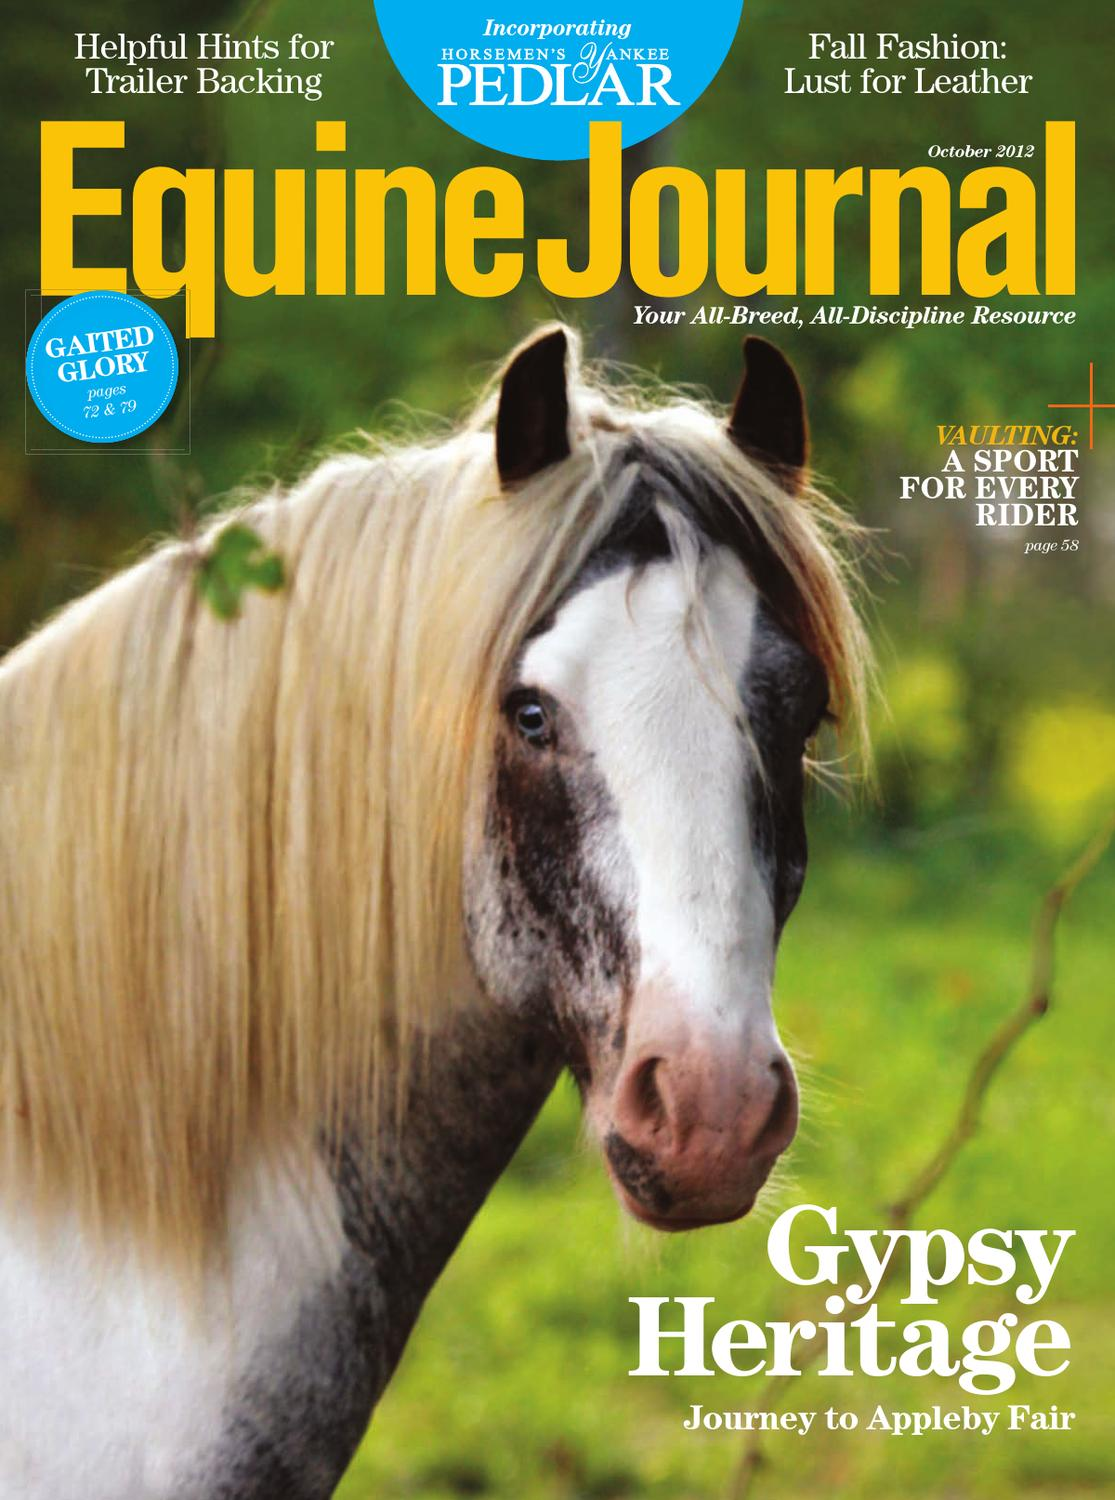 Krezi Kamis 26 Eileen Grace Absolutely White Cc Cream 50ml Oil Control Equine Journal October 2012 By Issuu